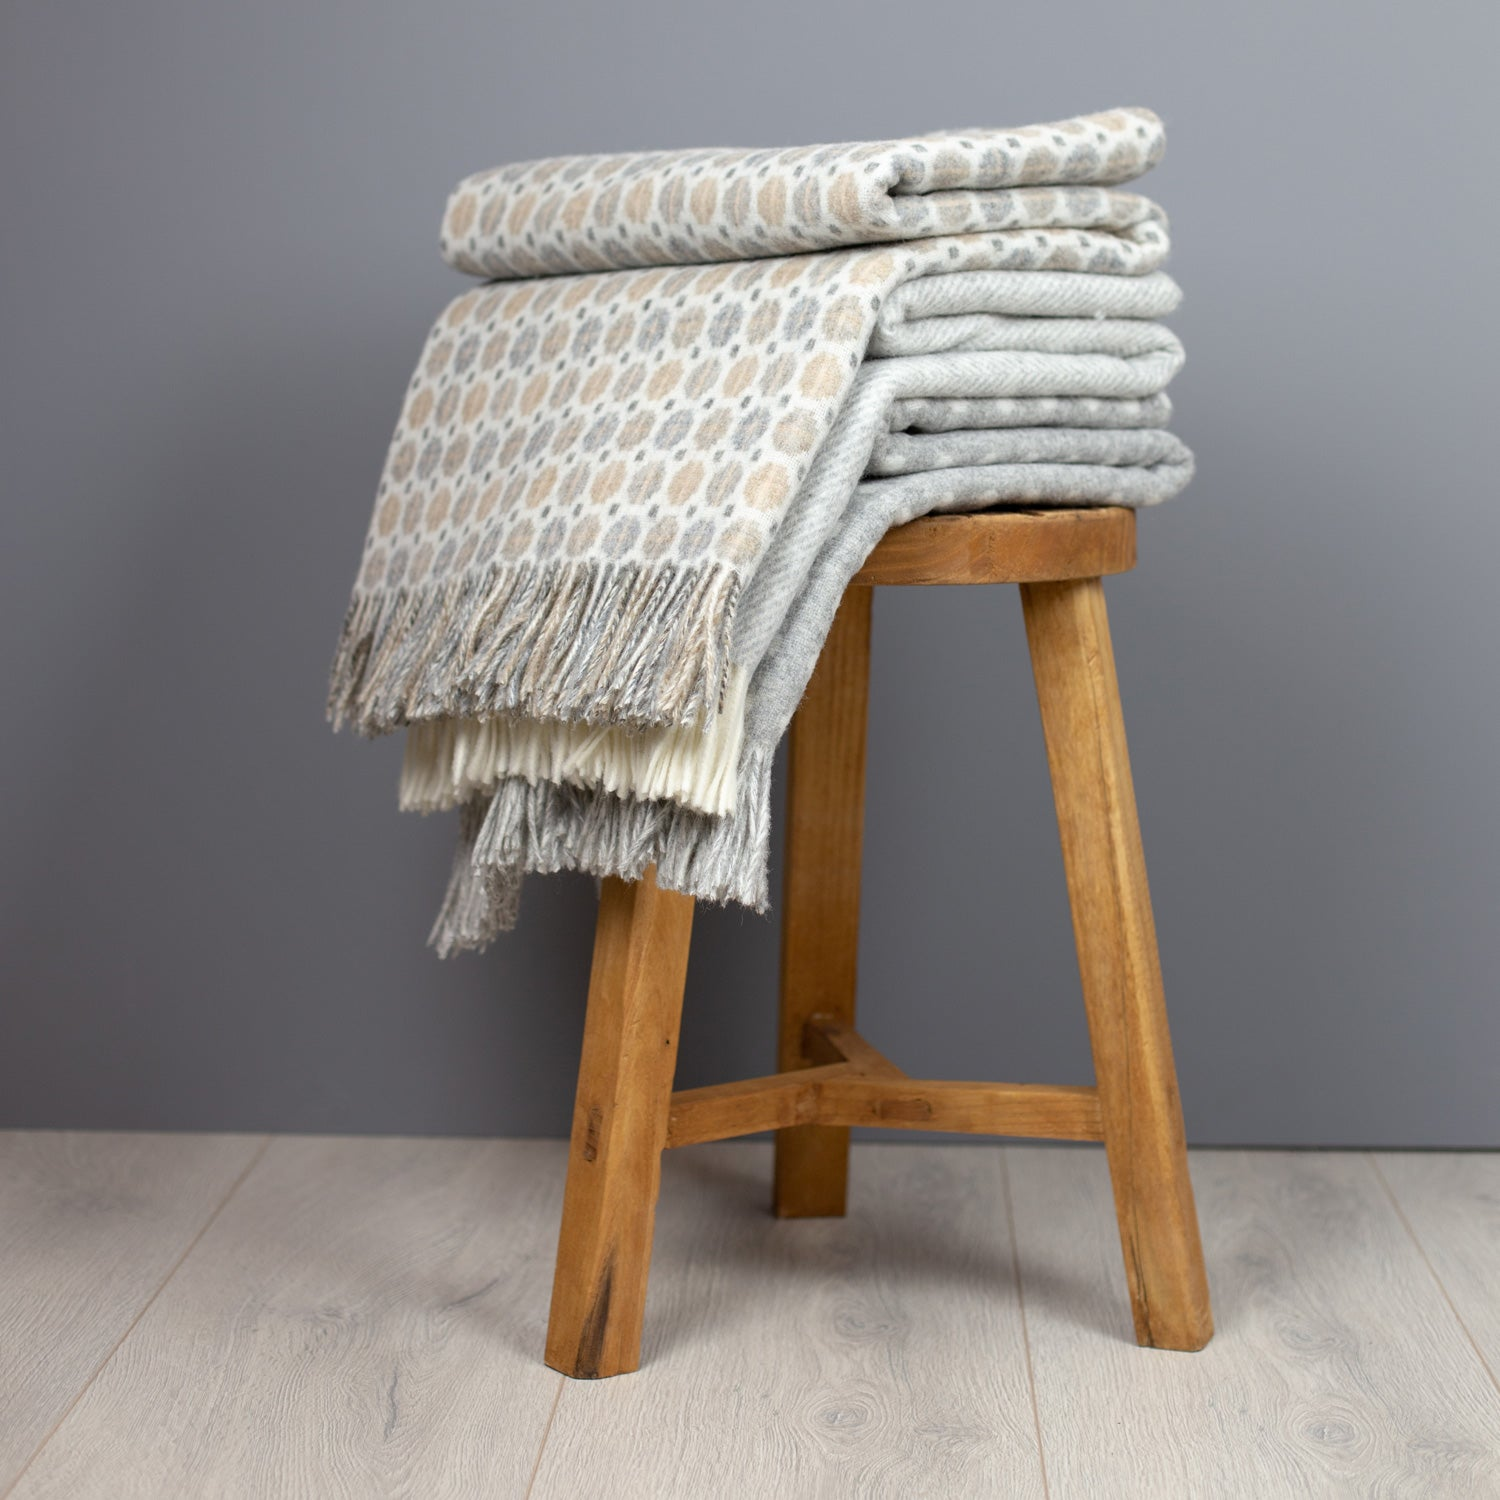 files/merino_wool_throws_homepg_1500.jpg